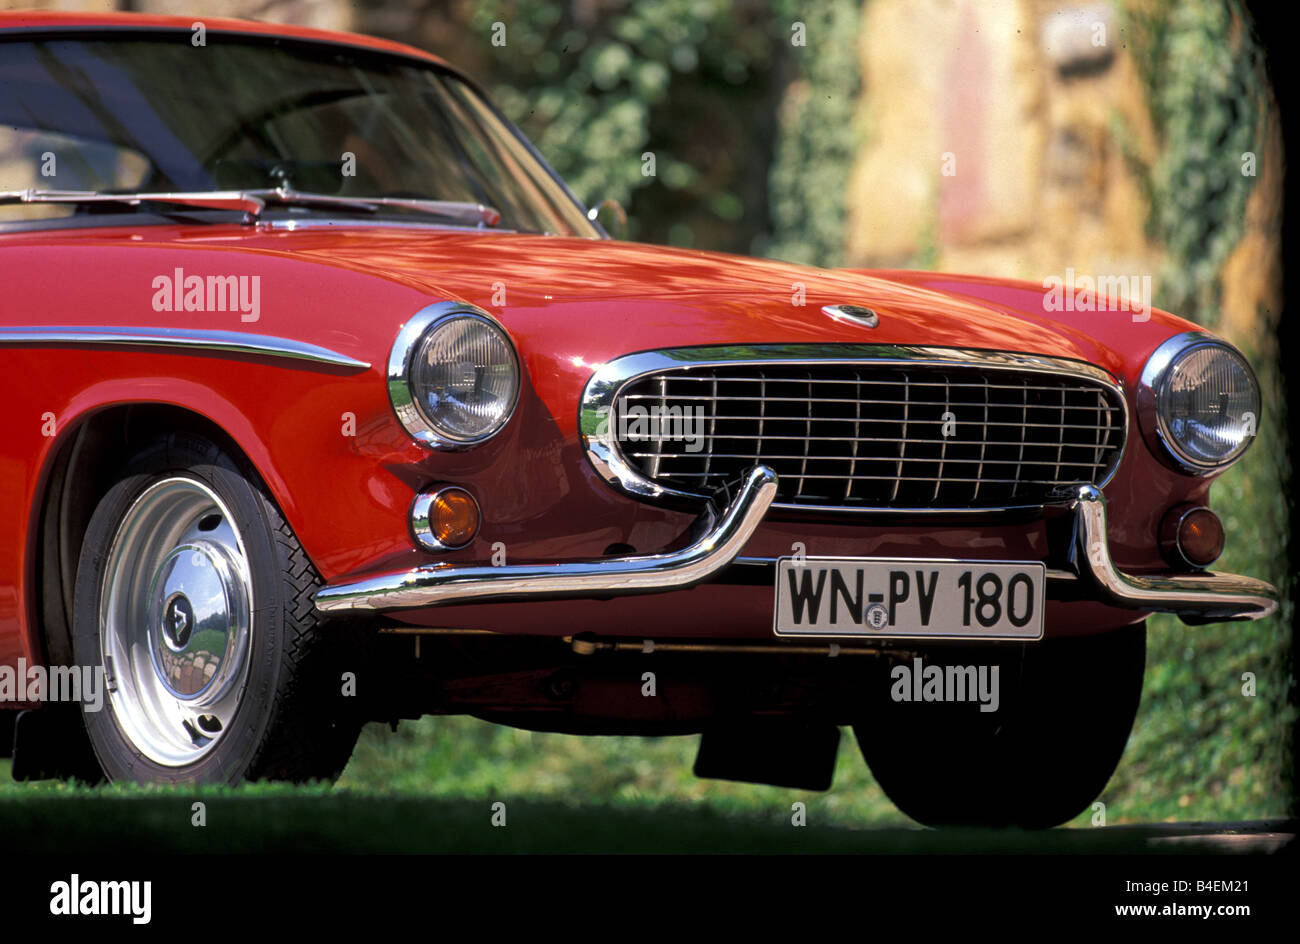 car volvo p 1800 s model year 1963 1964 vintage car